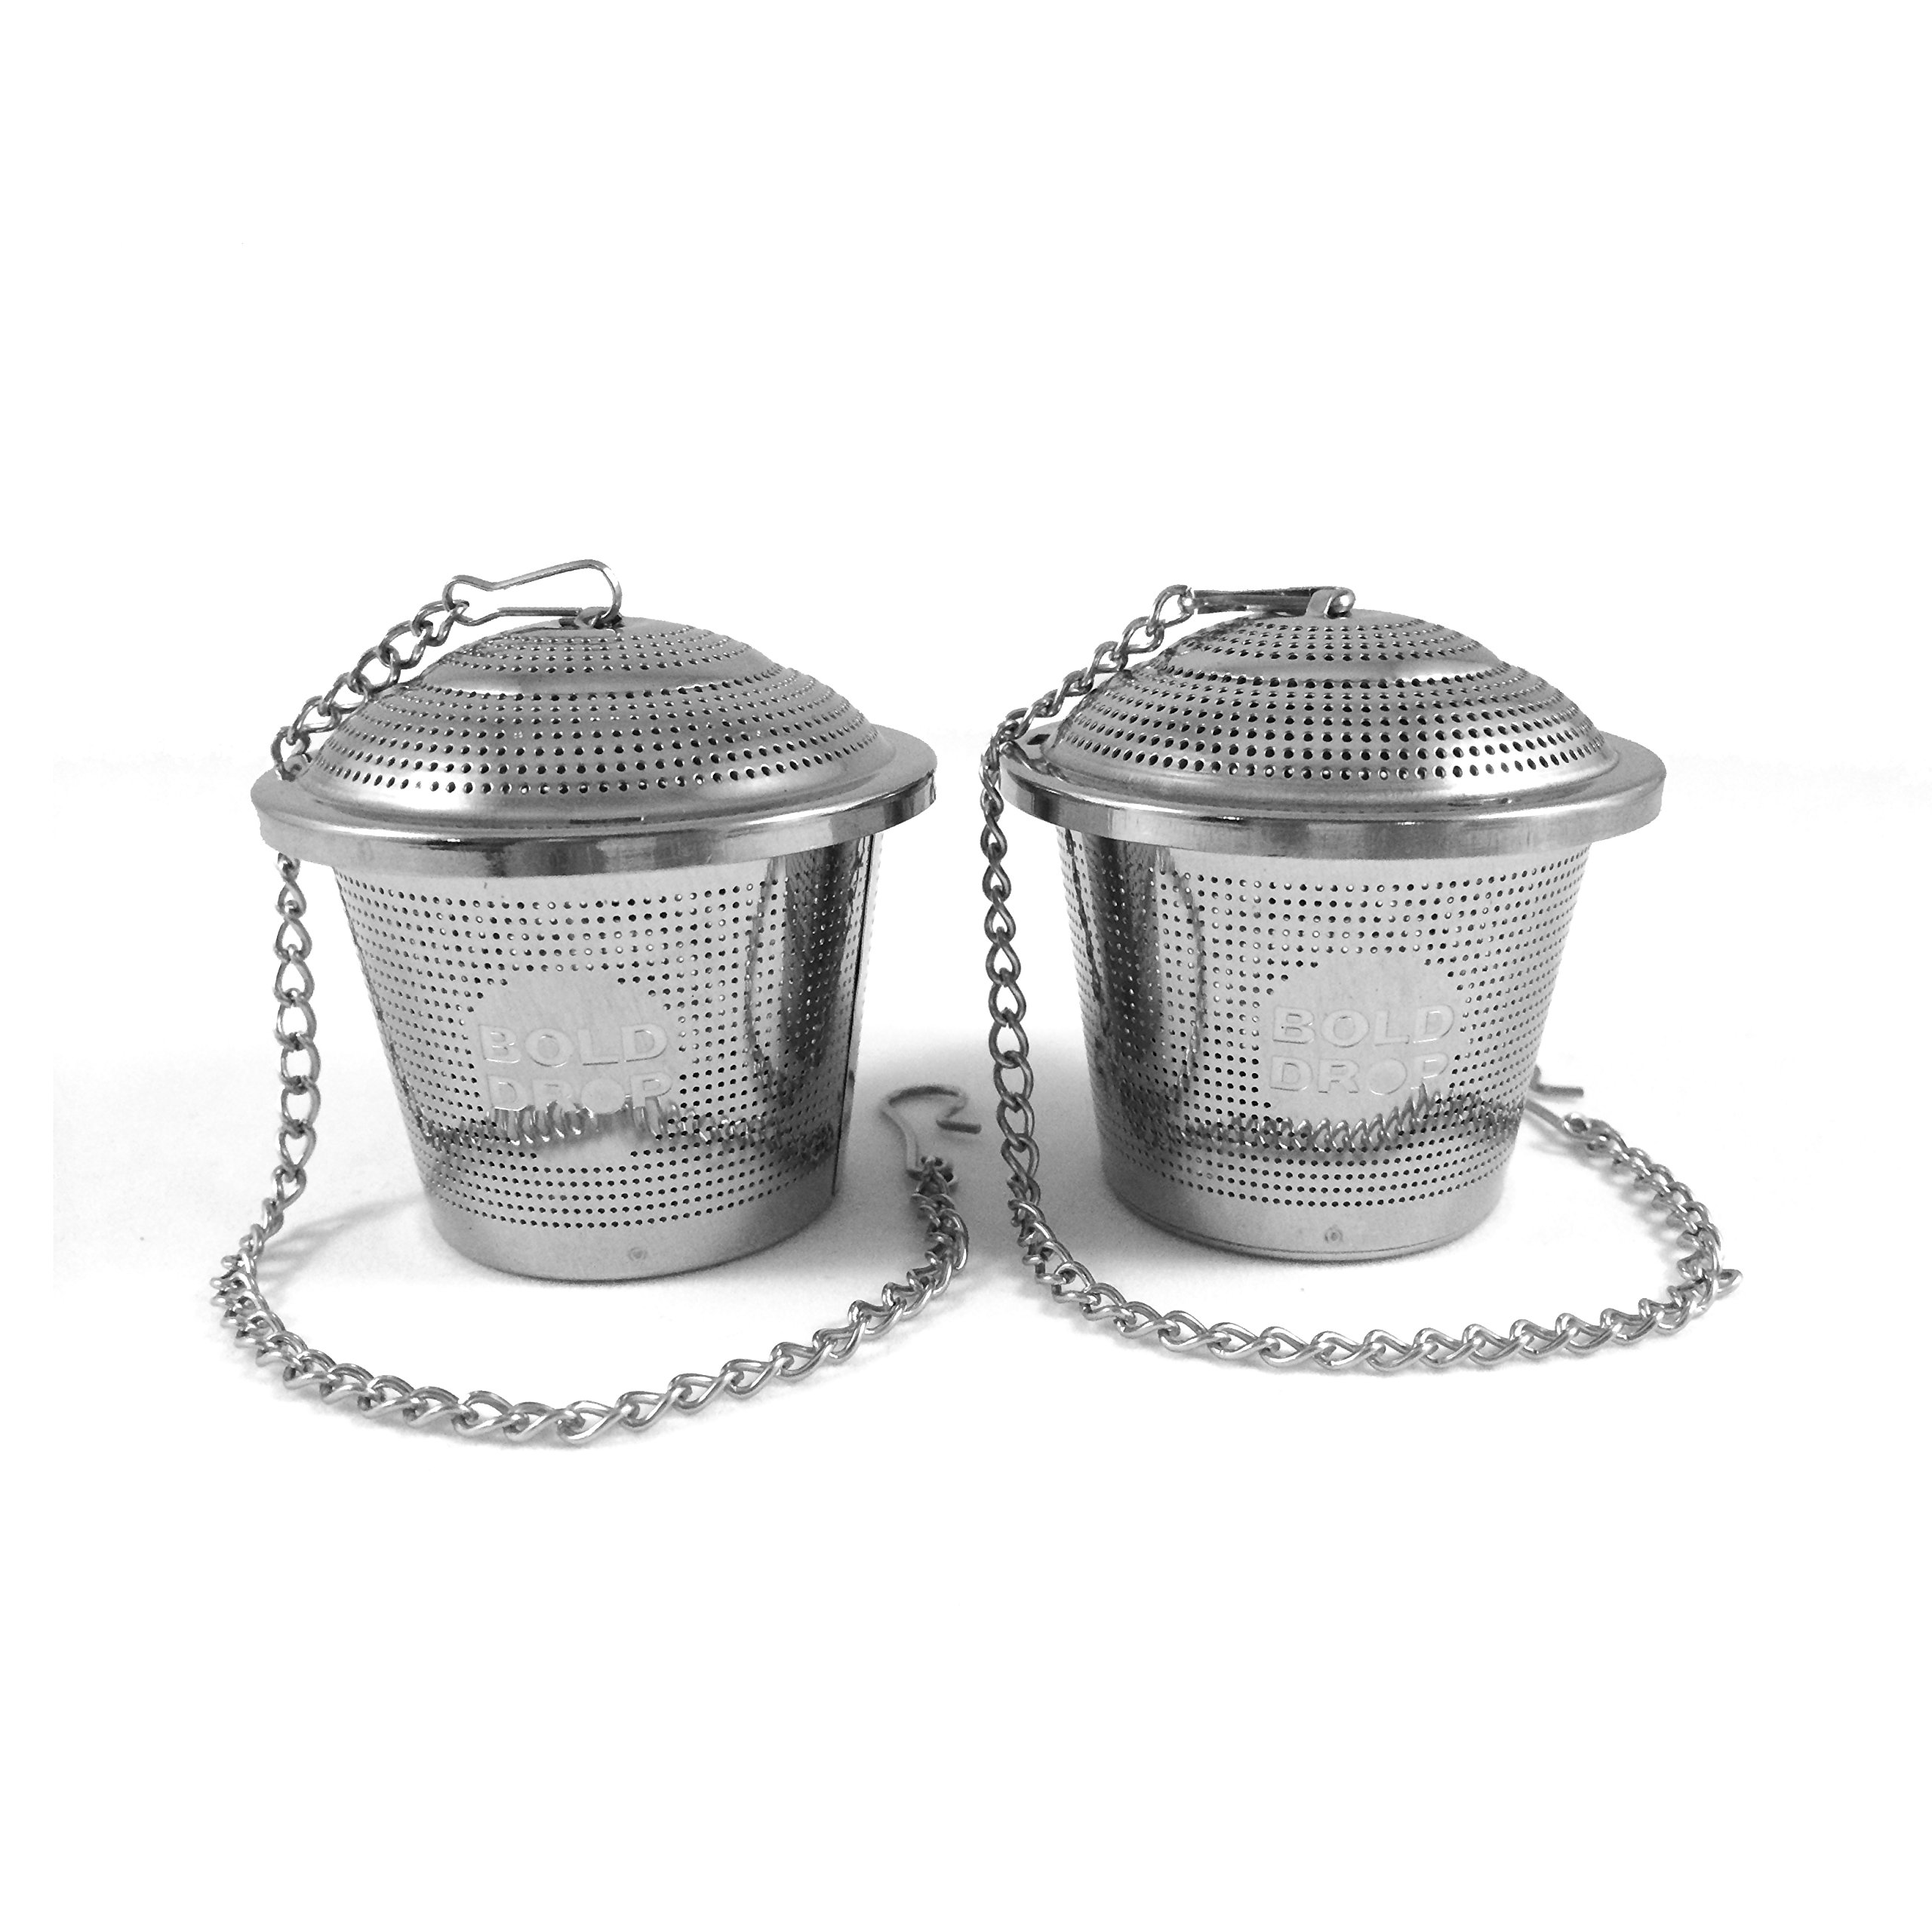 BoldDrop Extra Fine Loose Leaf Tea Infuser/Stainless Steel Filter with Extended 7'' Chain (Pack of 2)